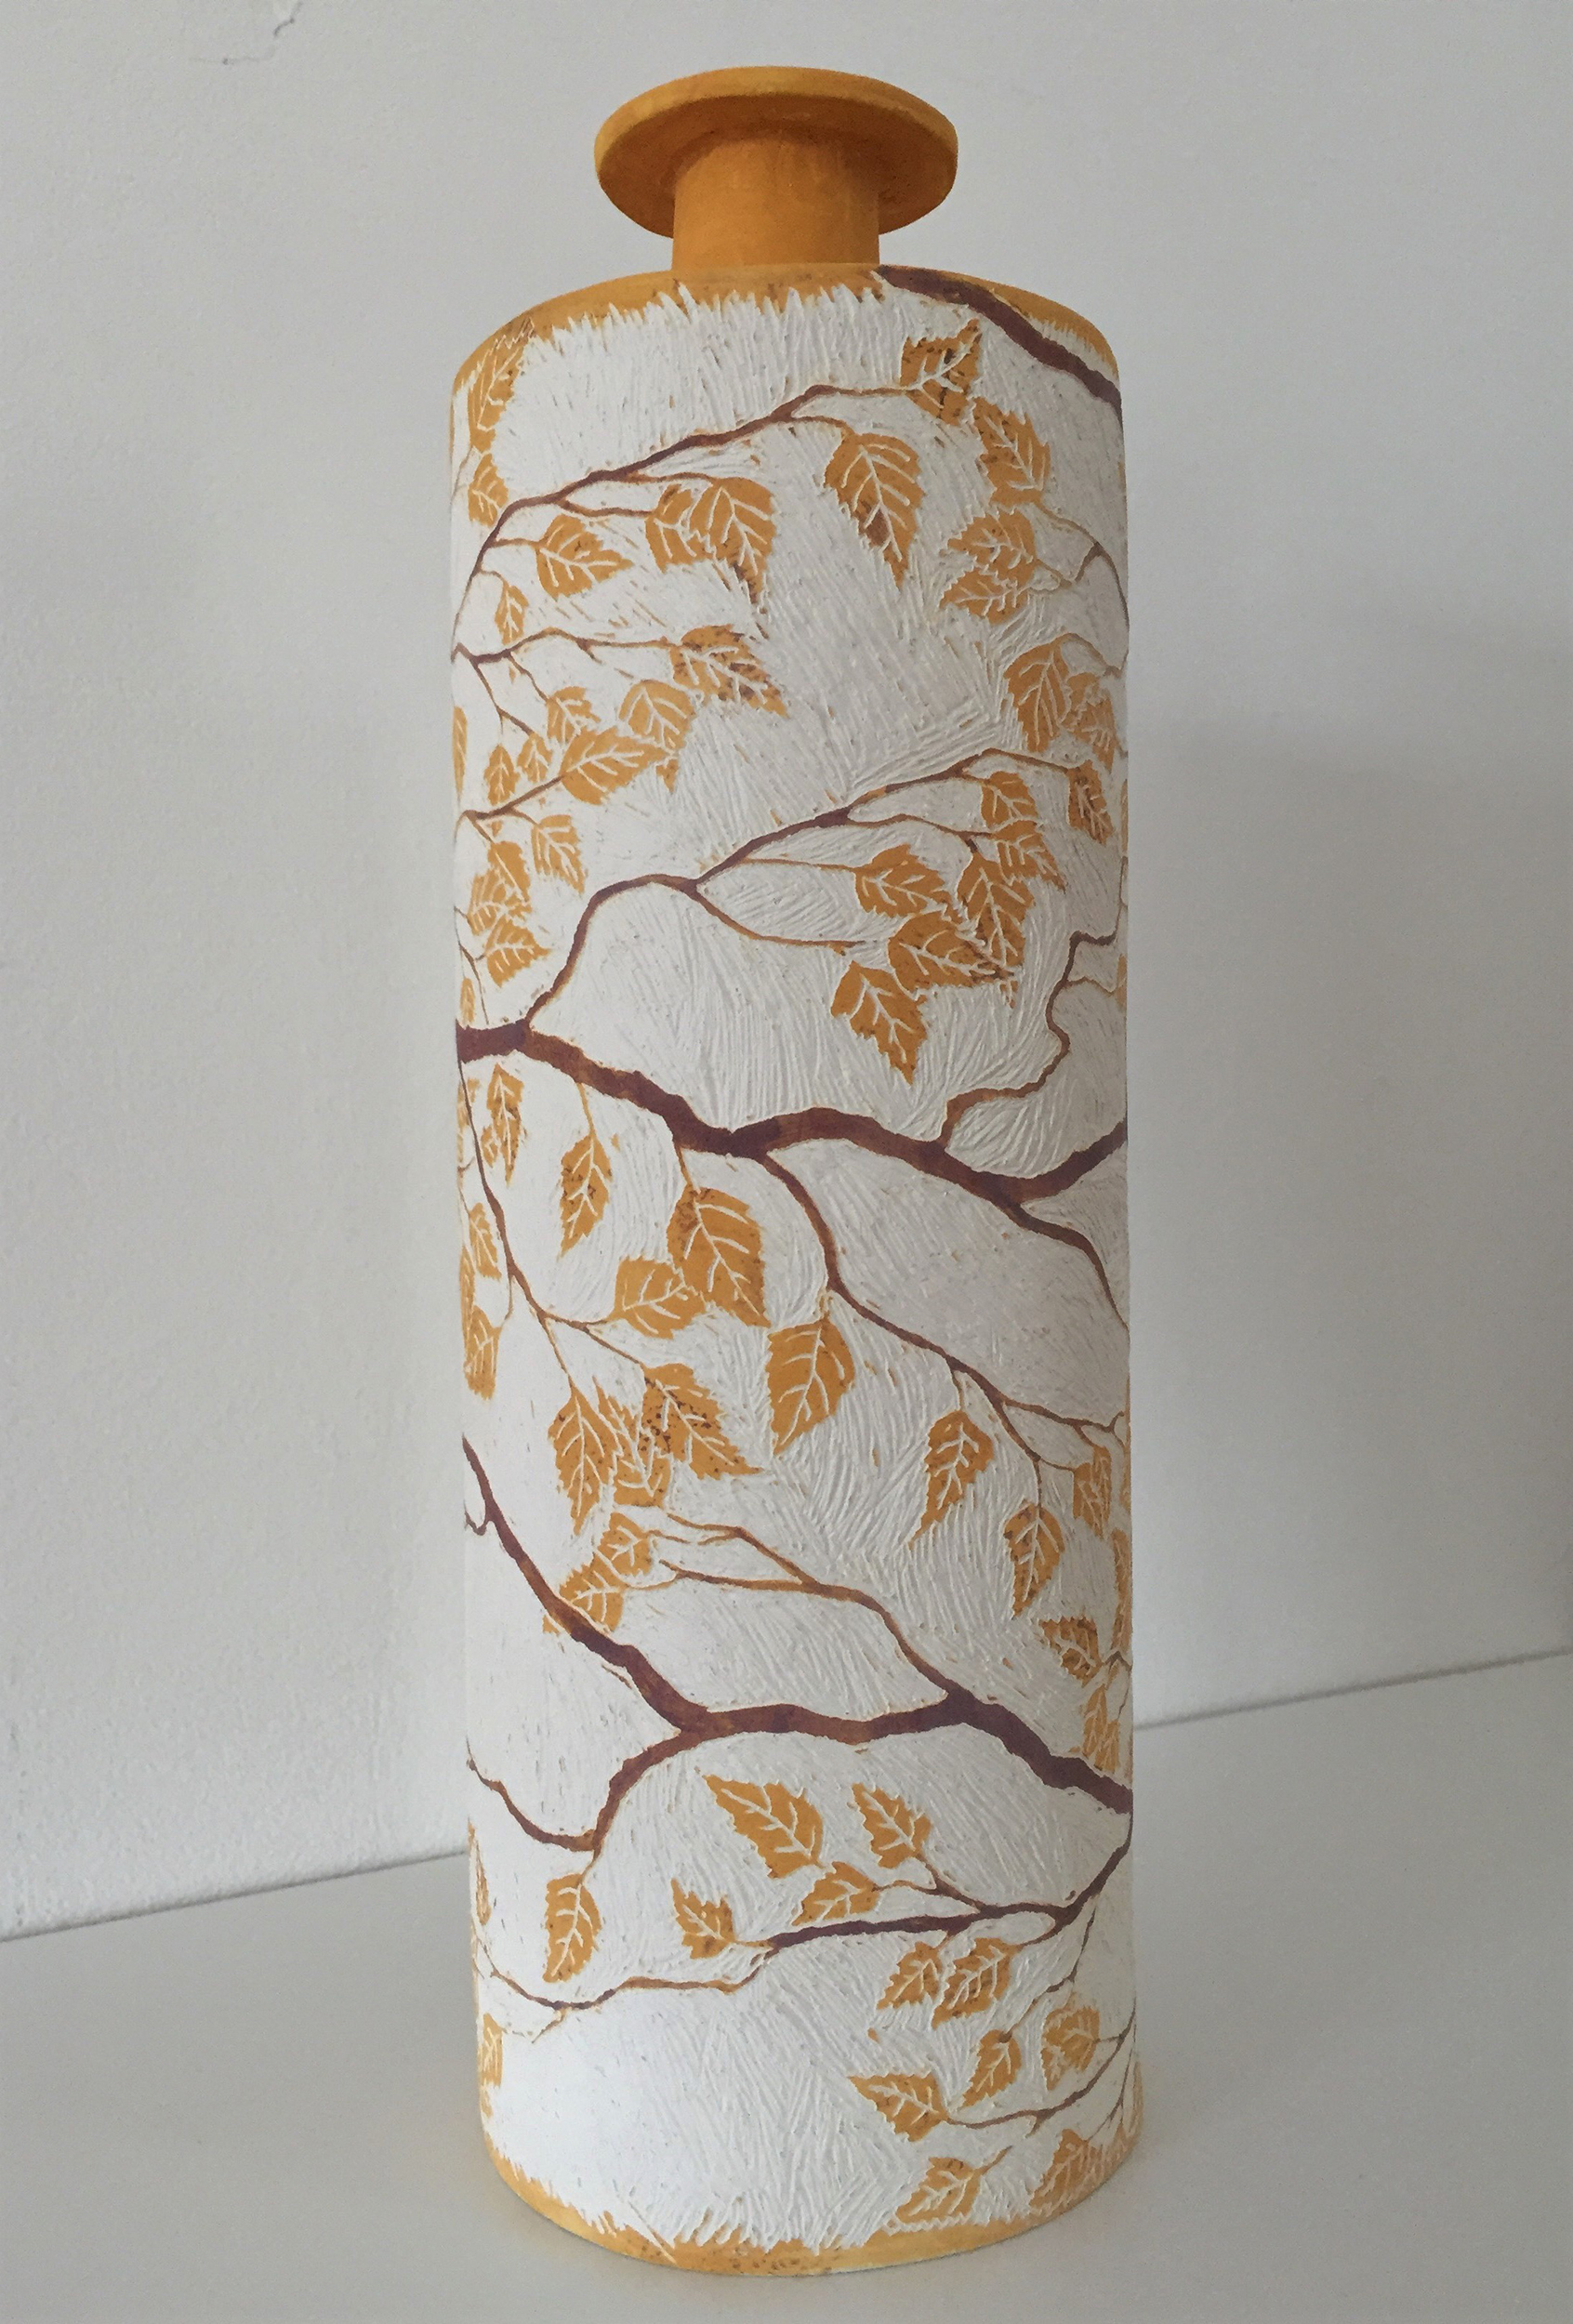 Nicky Bolland. Birch bottle vase